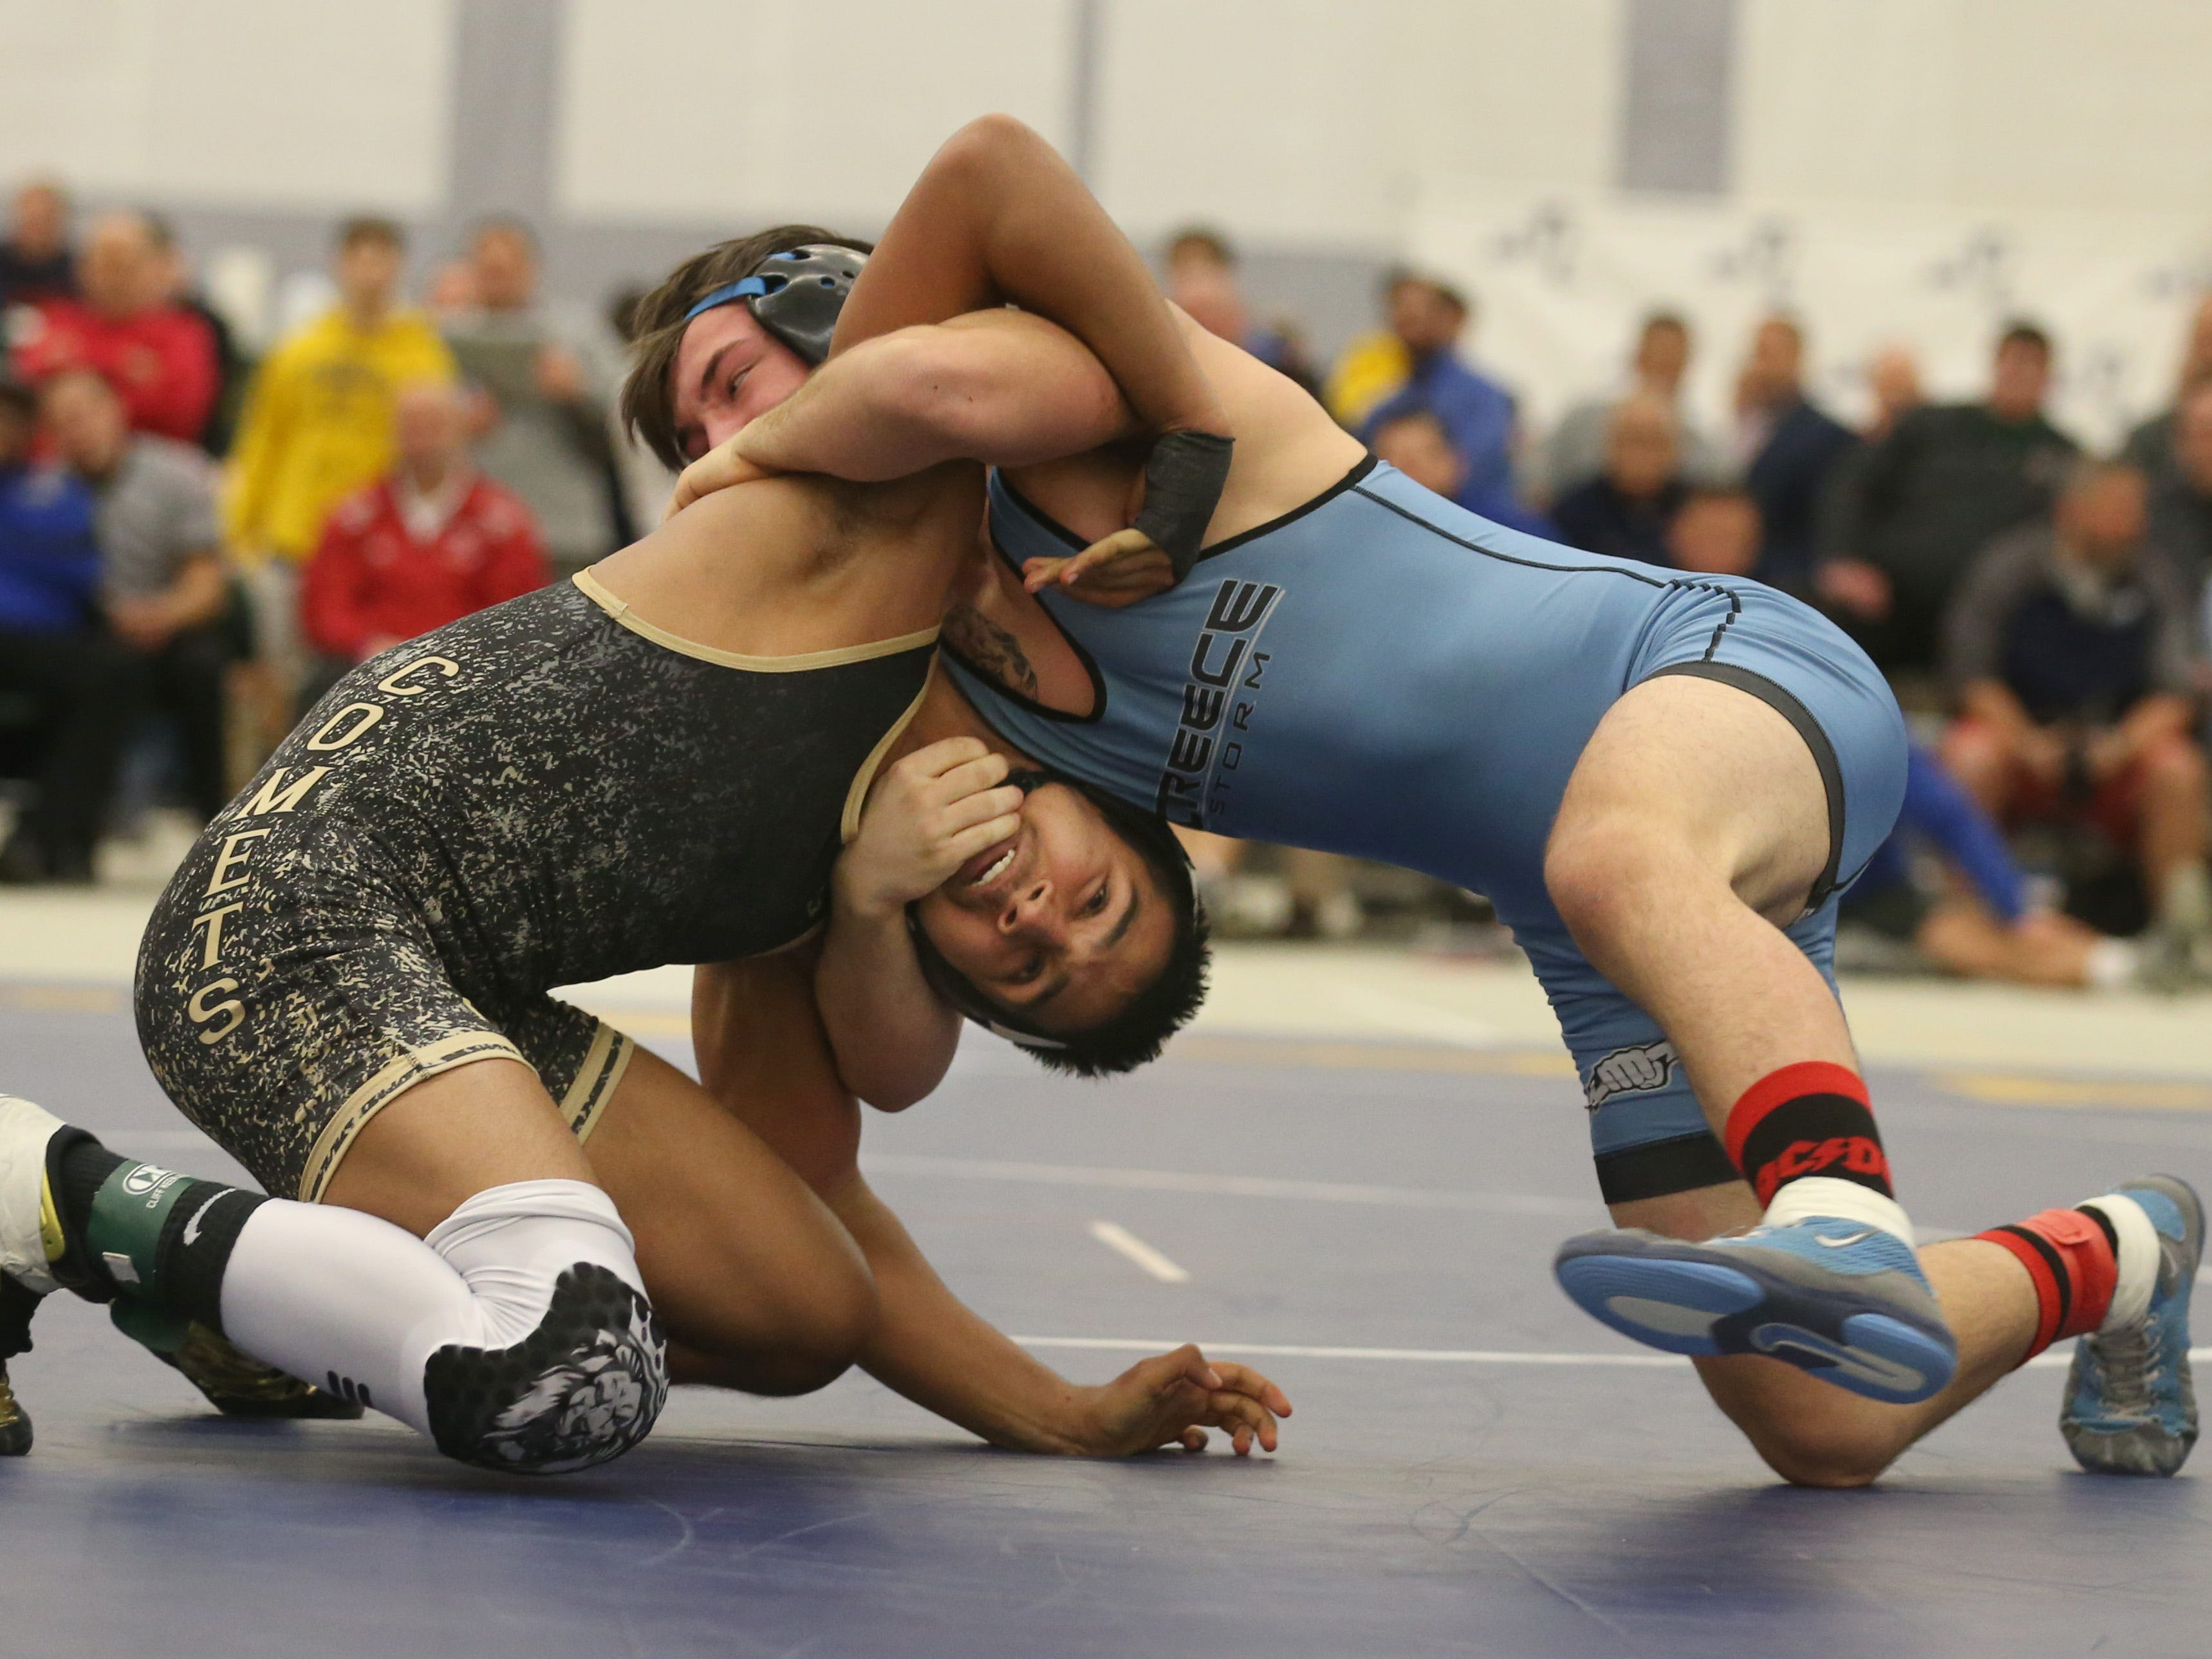 Greece's Dillon Callaghan, right top, ties up with Karamvir Hothi, Rush Henrietta, in their Division 1, 145 pound match at the 52nd Annual State Wrestling Qualifier at the College at Brockport Saturday, Feb. 9, 2019.